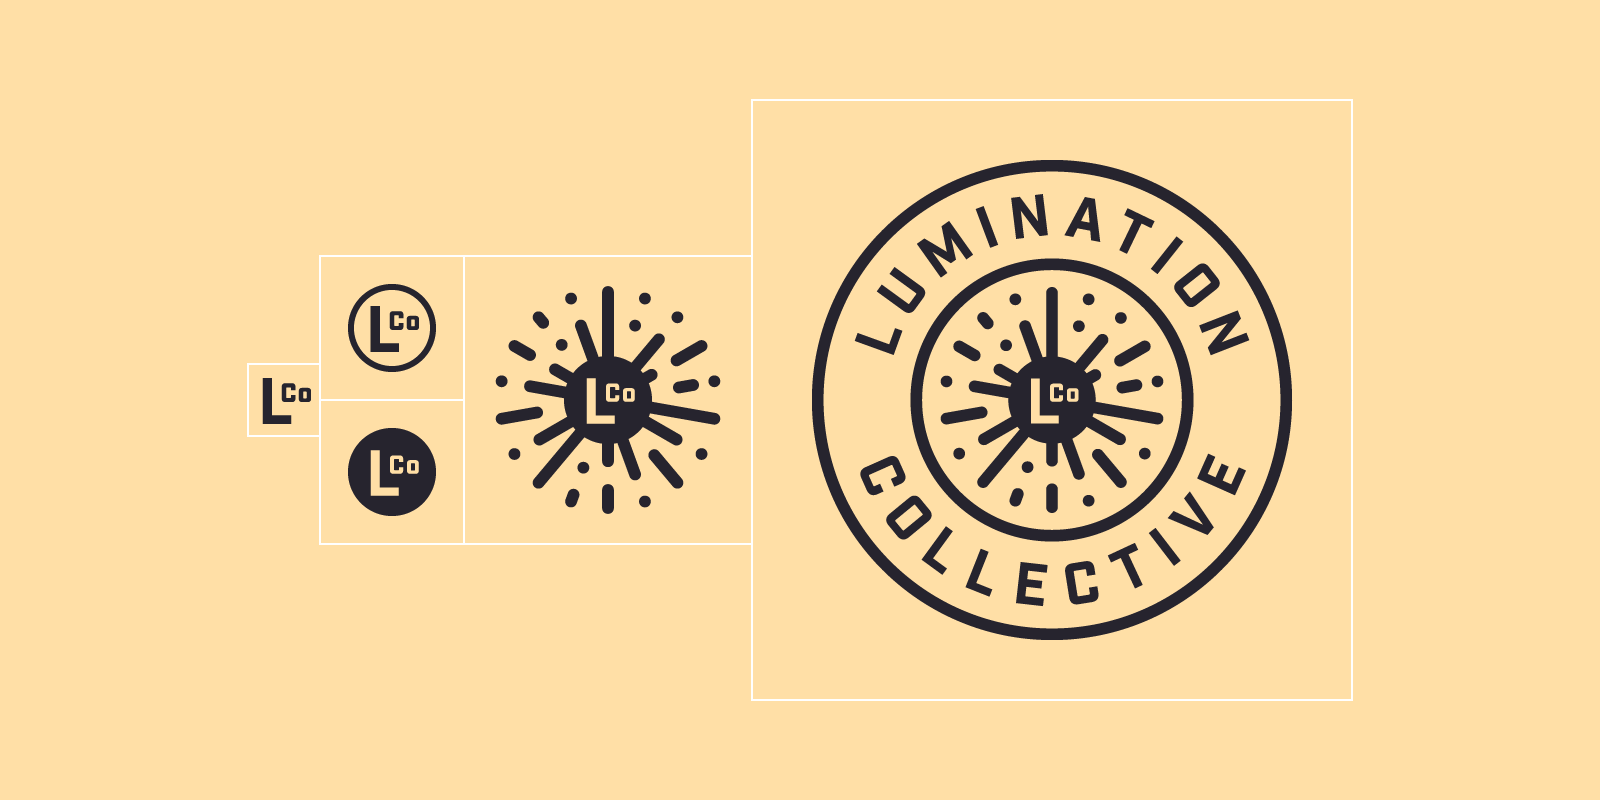 Lumination Collective logo variations